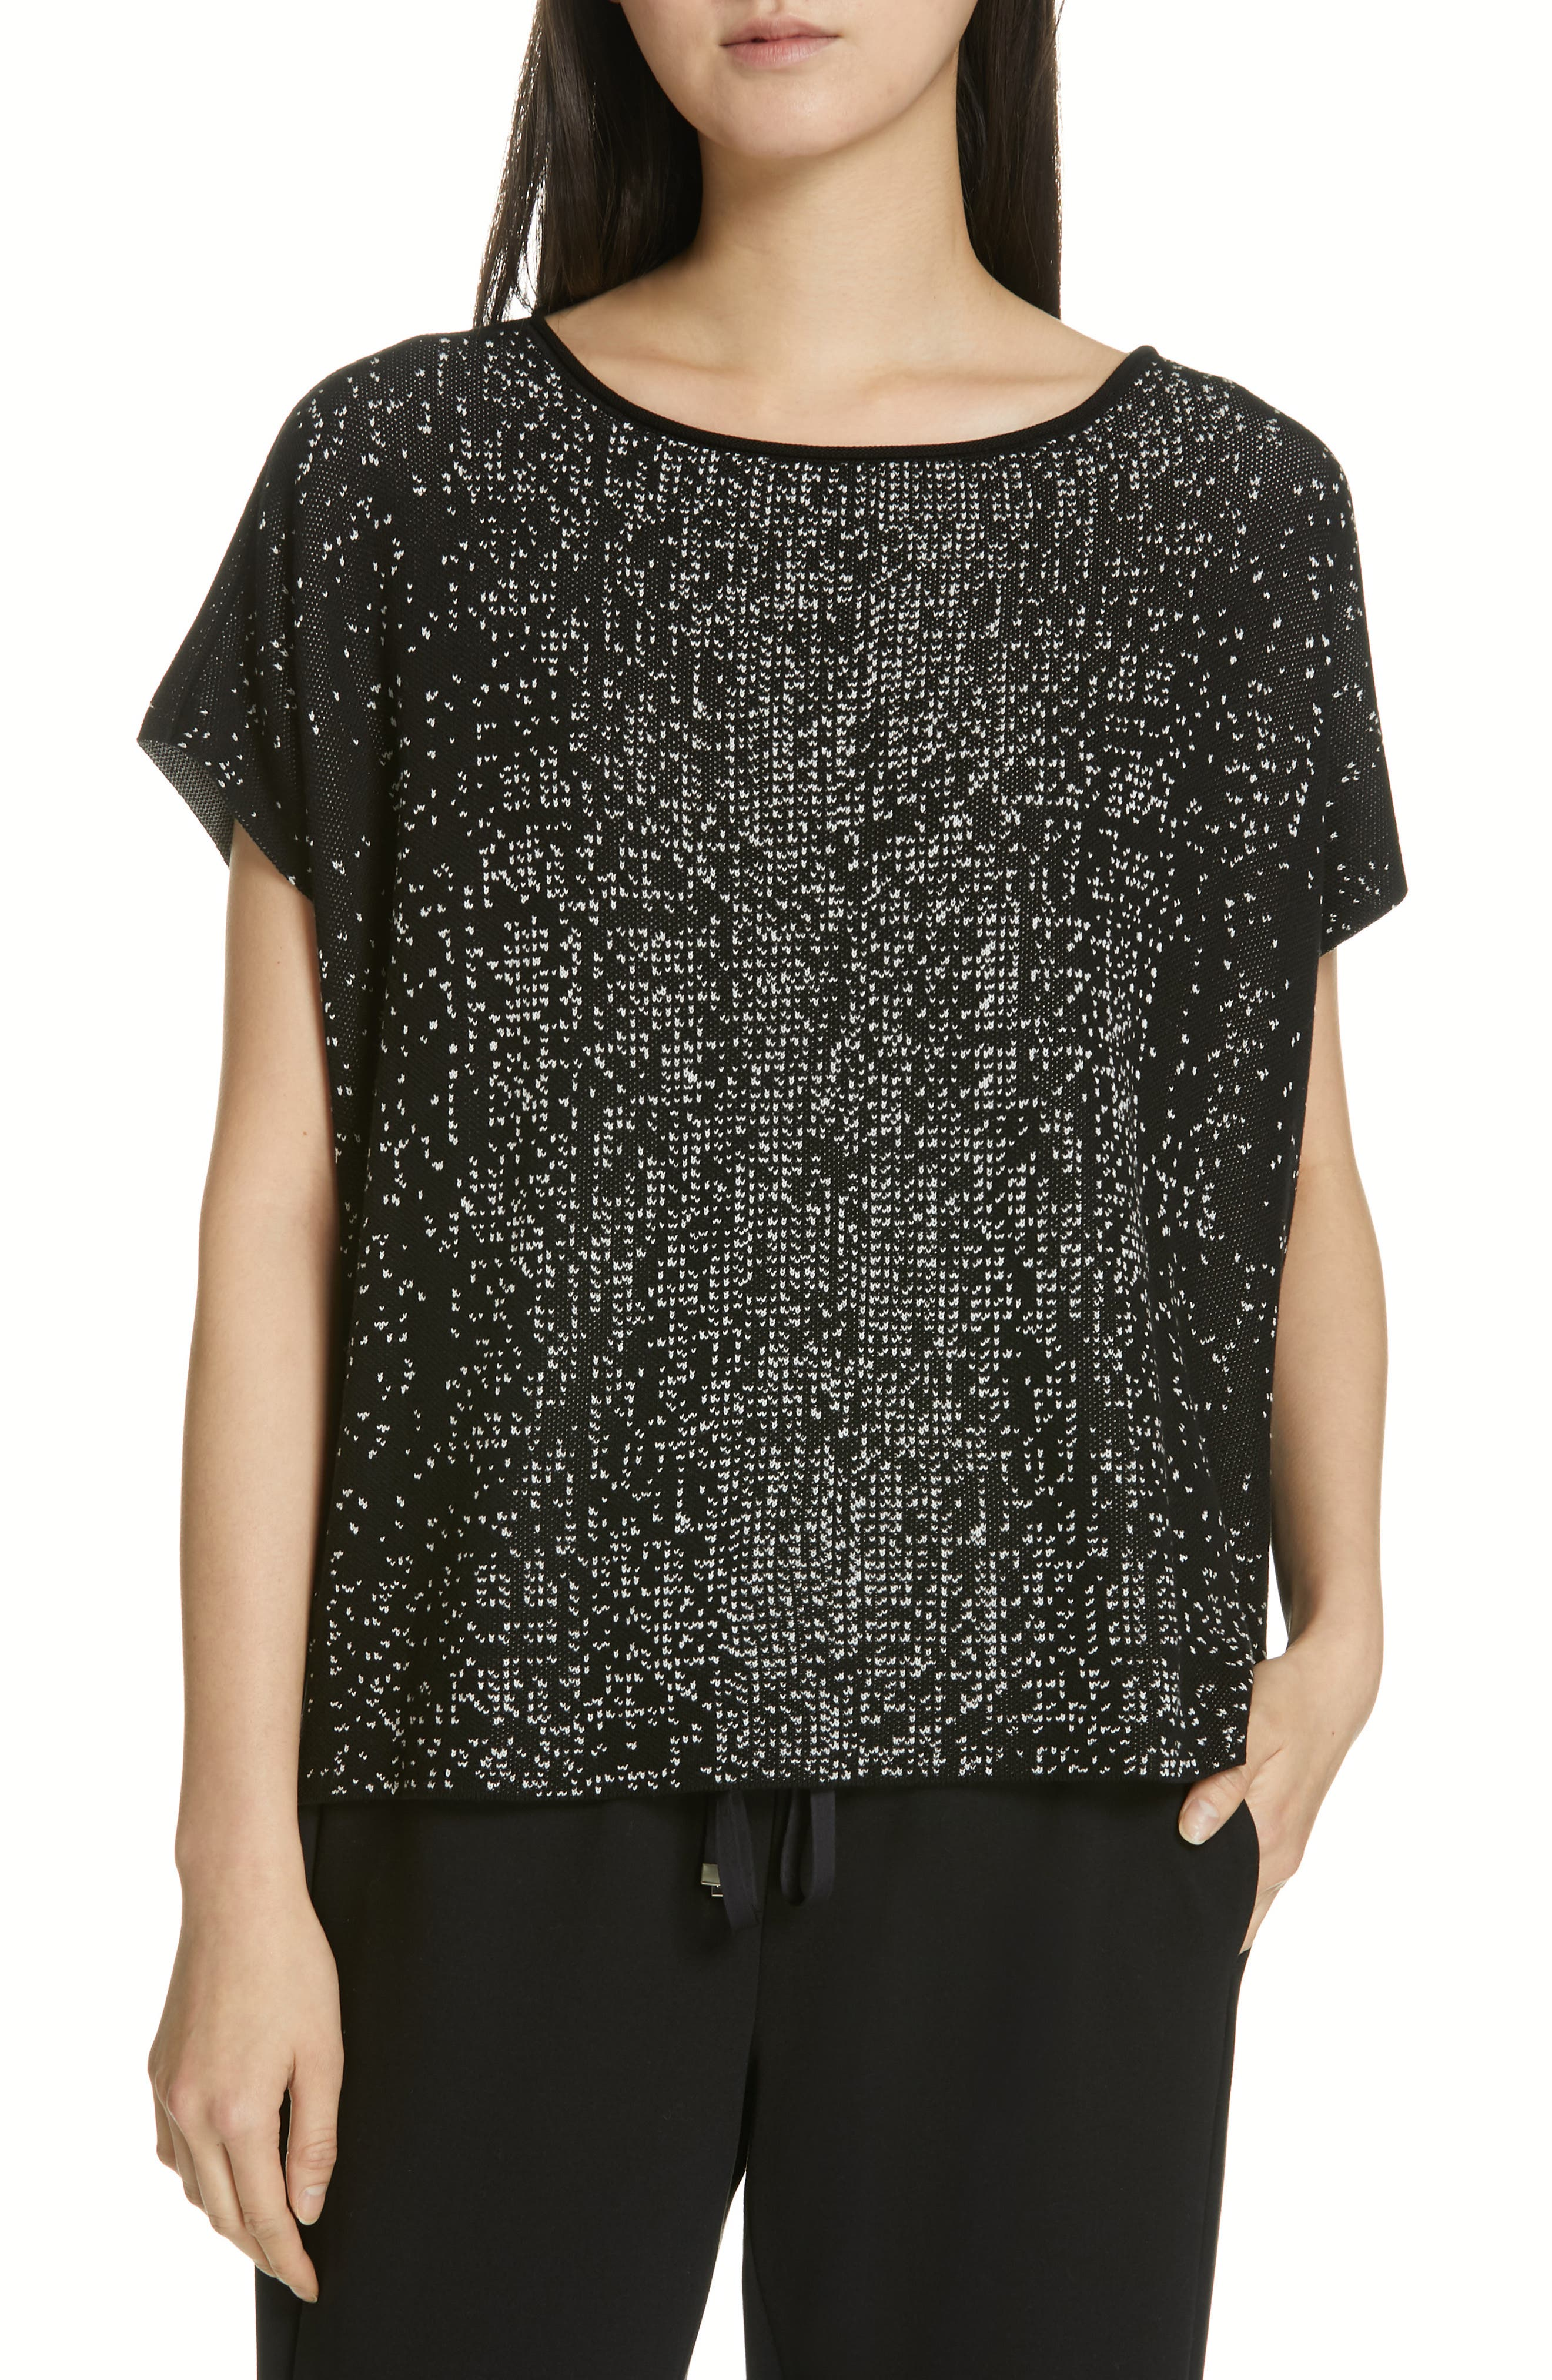 EILEEN FISHER Bateau Neck Top, Main, color, BLACK/ SOFT WHITE